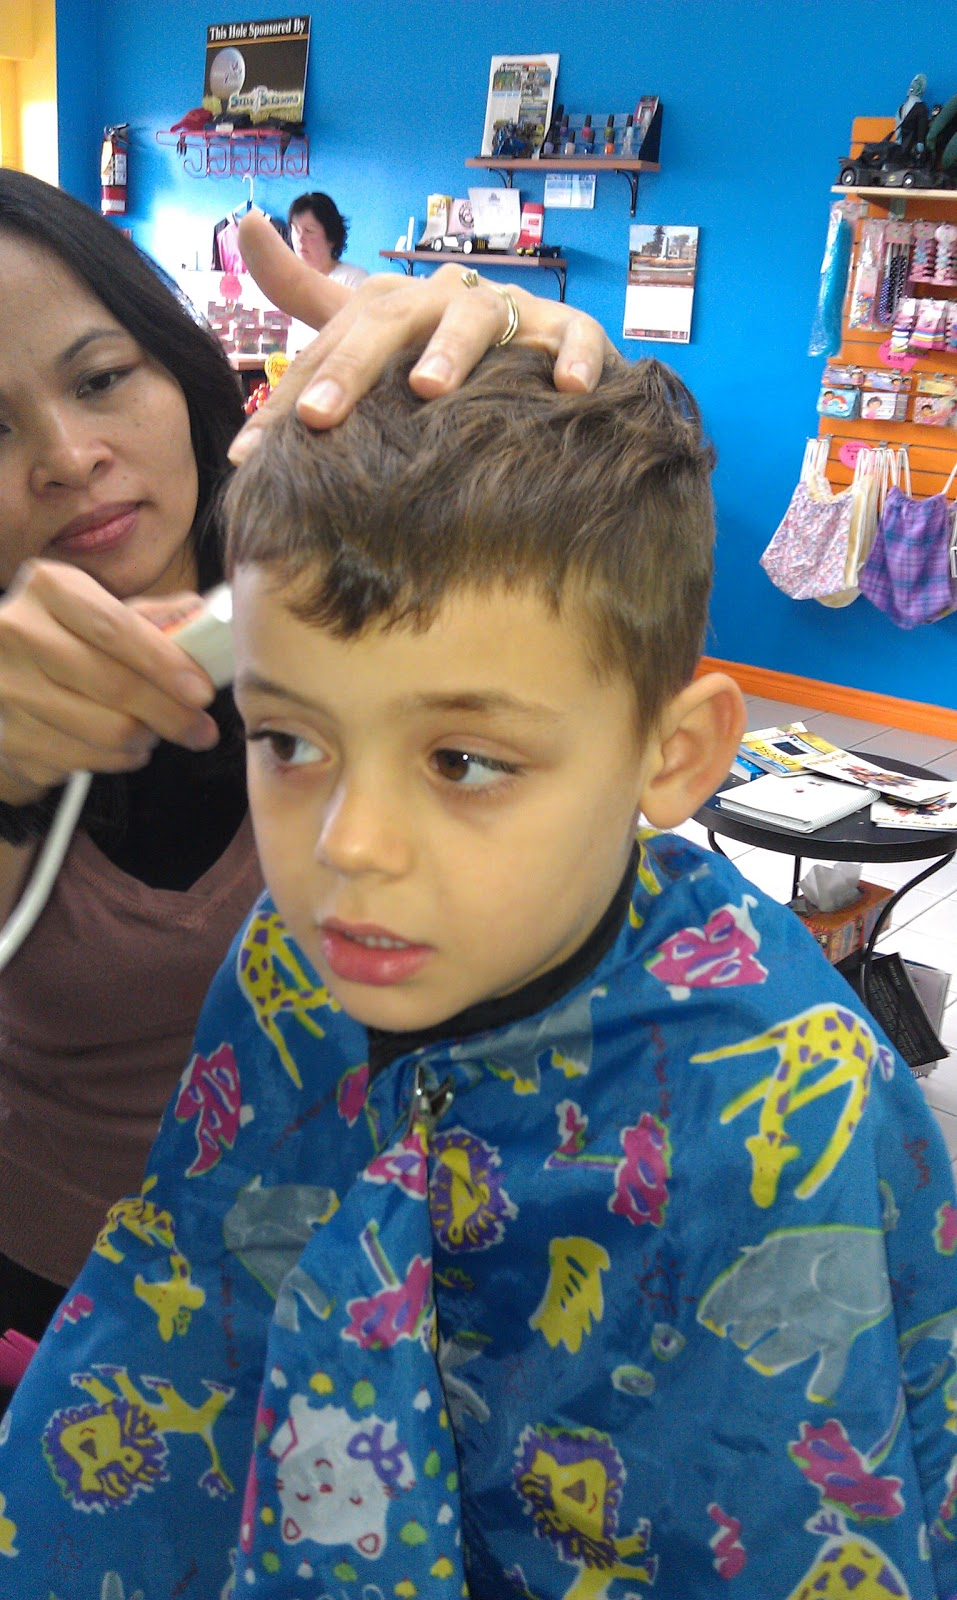 3hundreds6tens5ones 11 20 2011 1st mohawk haircut and hockey game